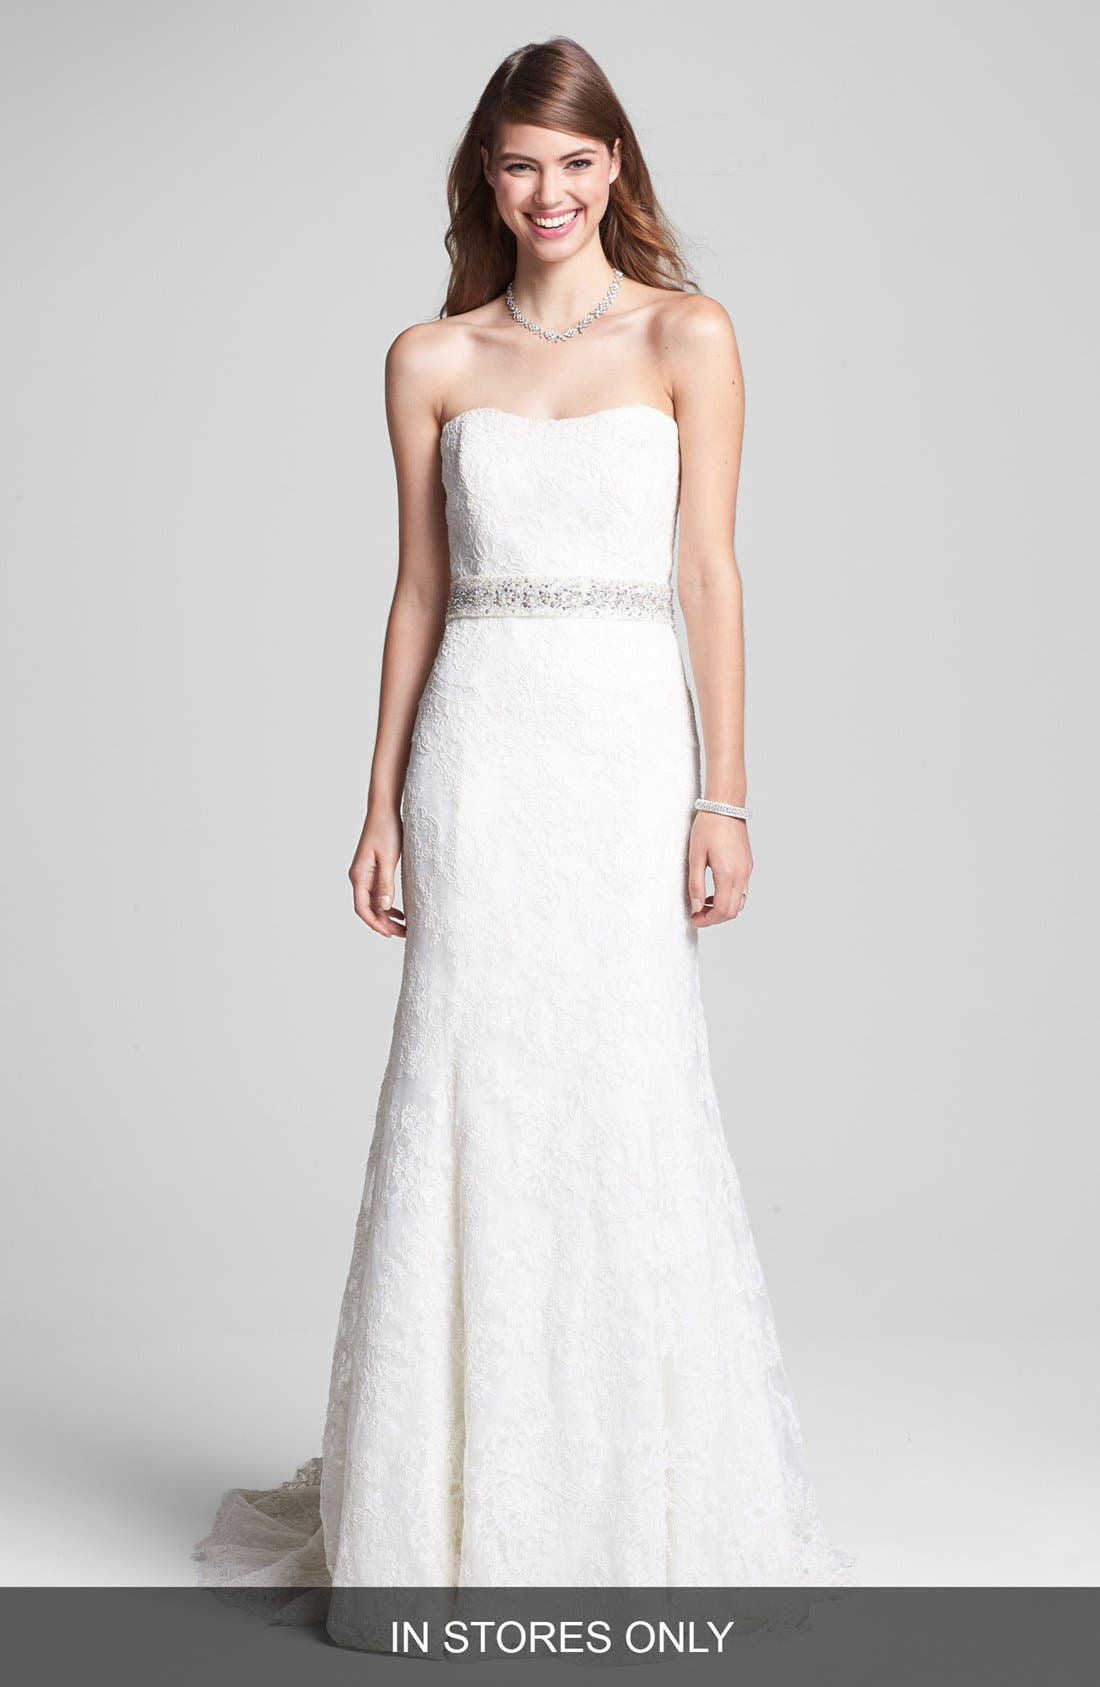 Alternate Image 1 Selected - BLISS Monique Lhuillier Strapless Lace Wedding Dress with Beaded Waist (In Stores Only)